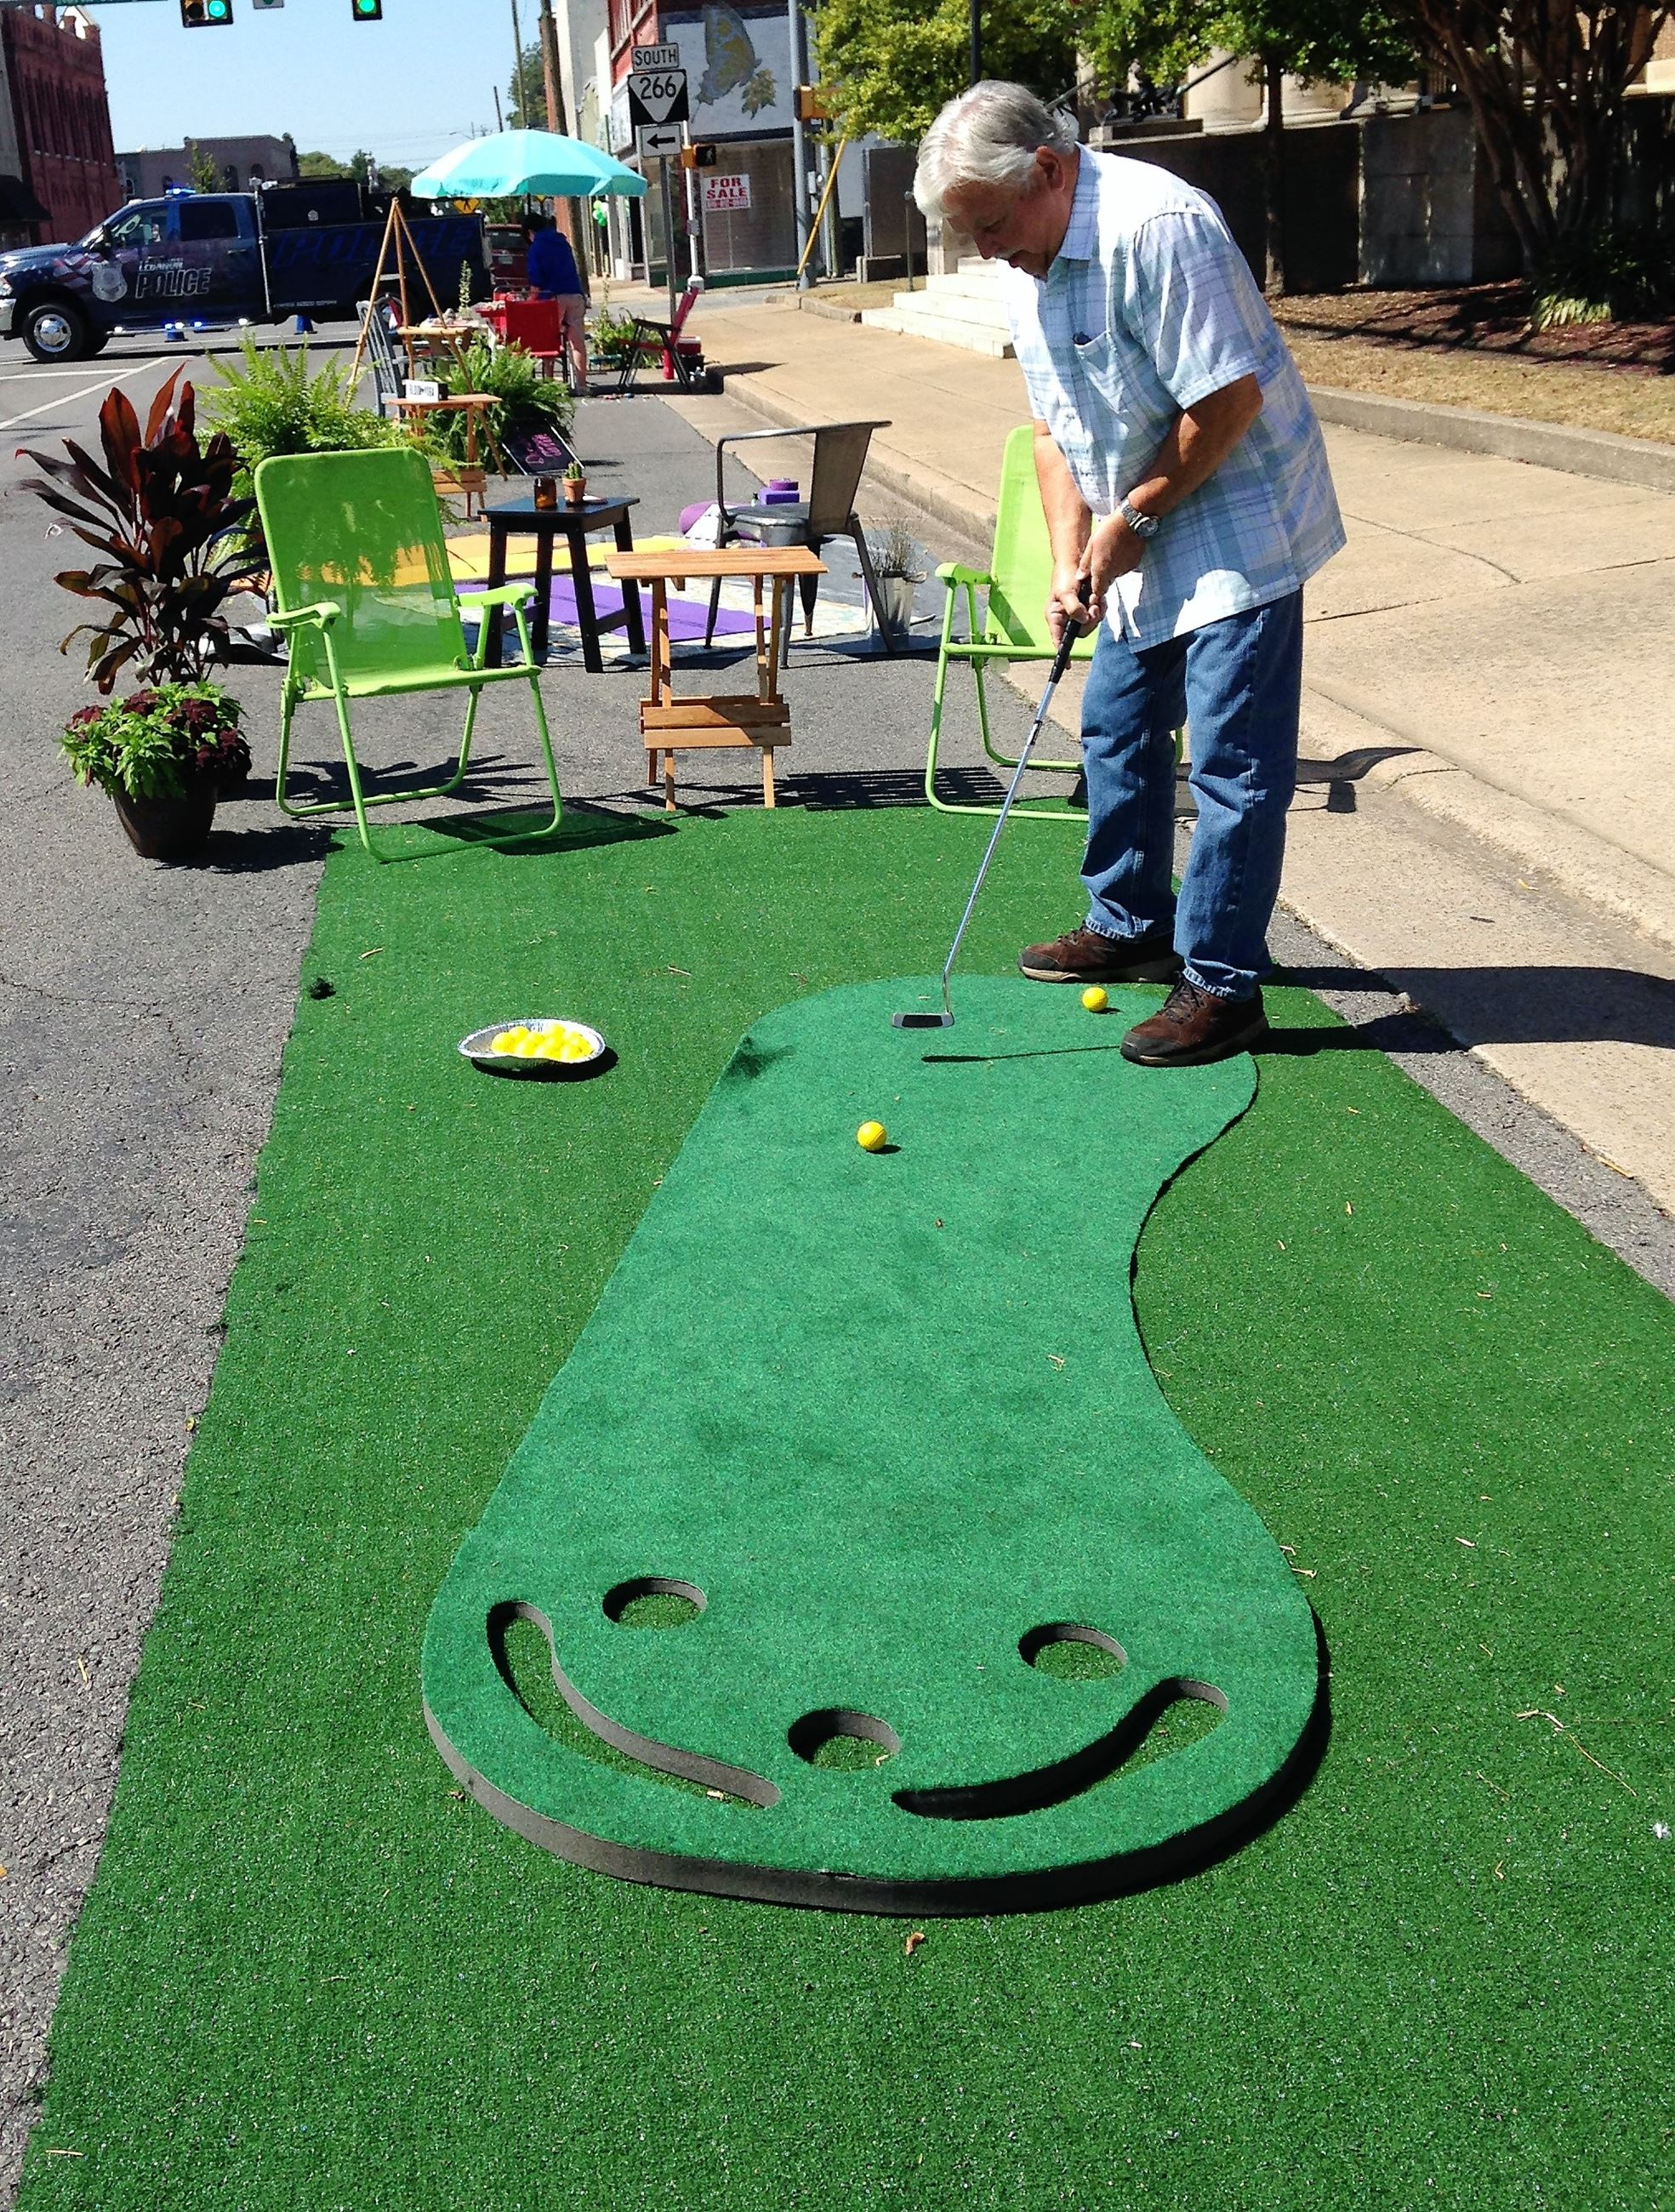 Mayor Bernie Ash enjoying the putting green.